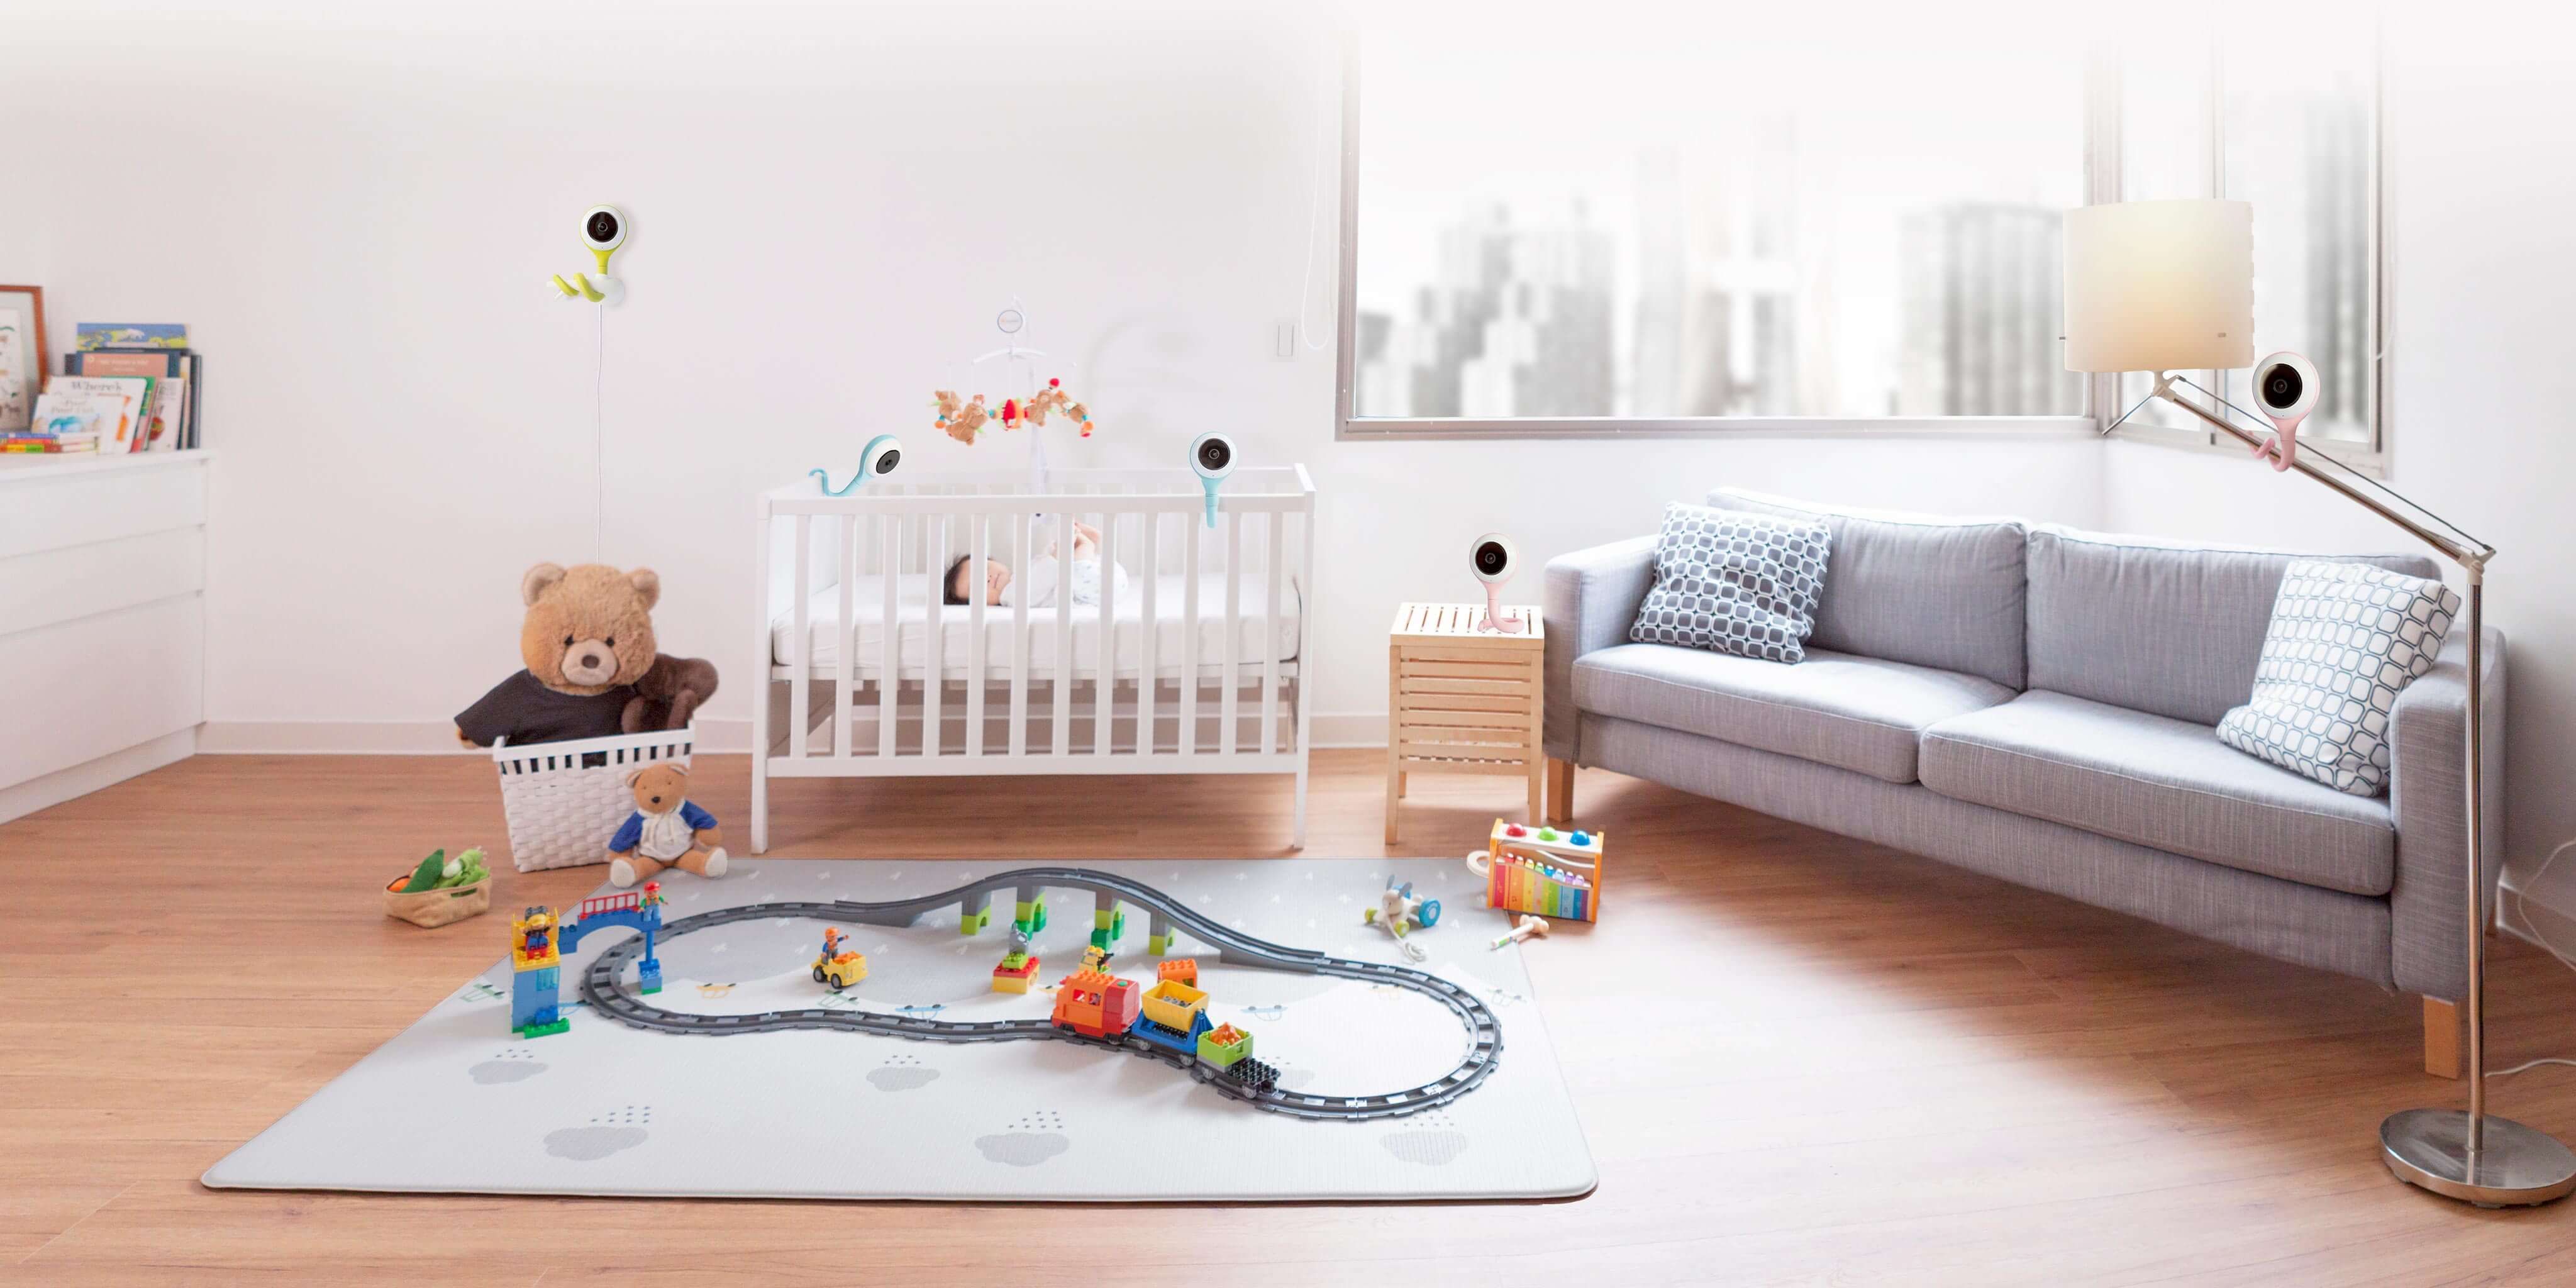 Where can I install/place Lollipop Baby Camera? - Lollipop Smart Baby  Monitor - A Revolutionary Baby Caring System